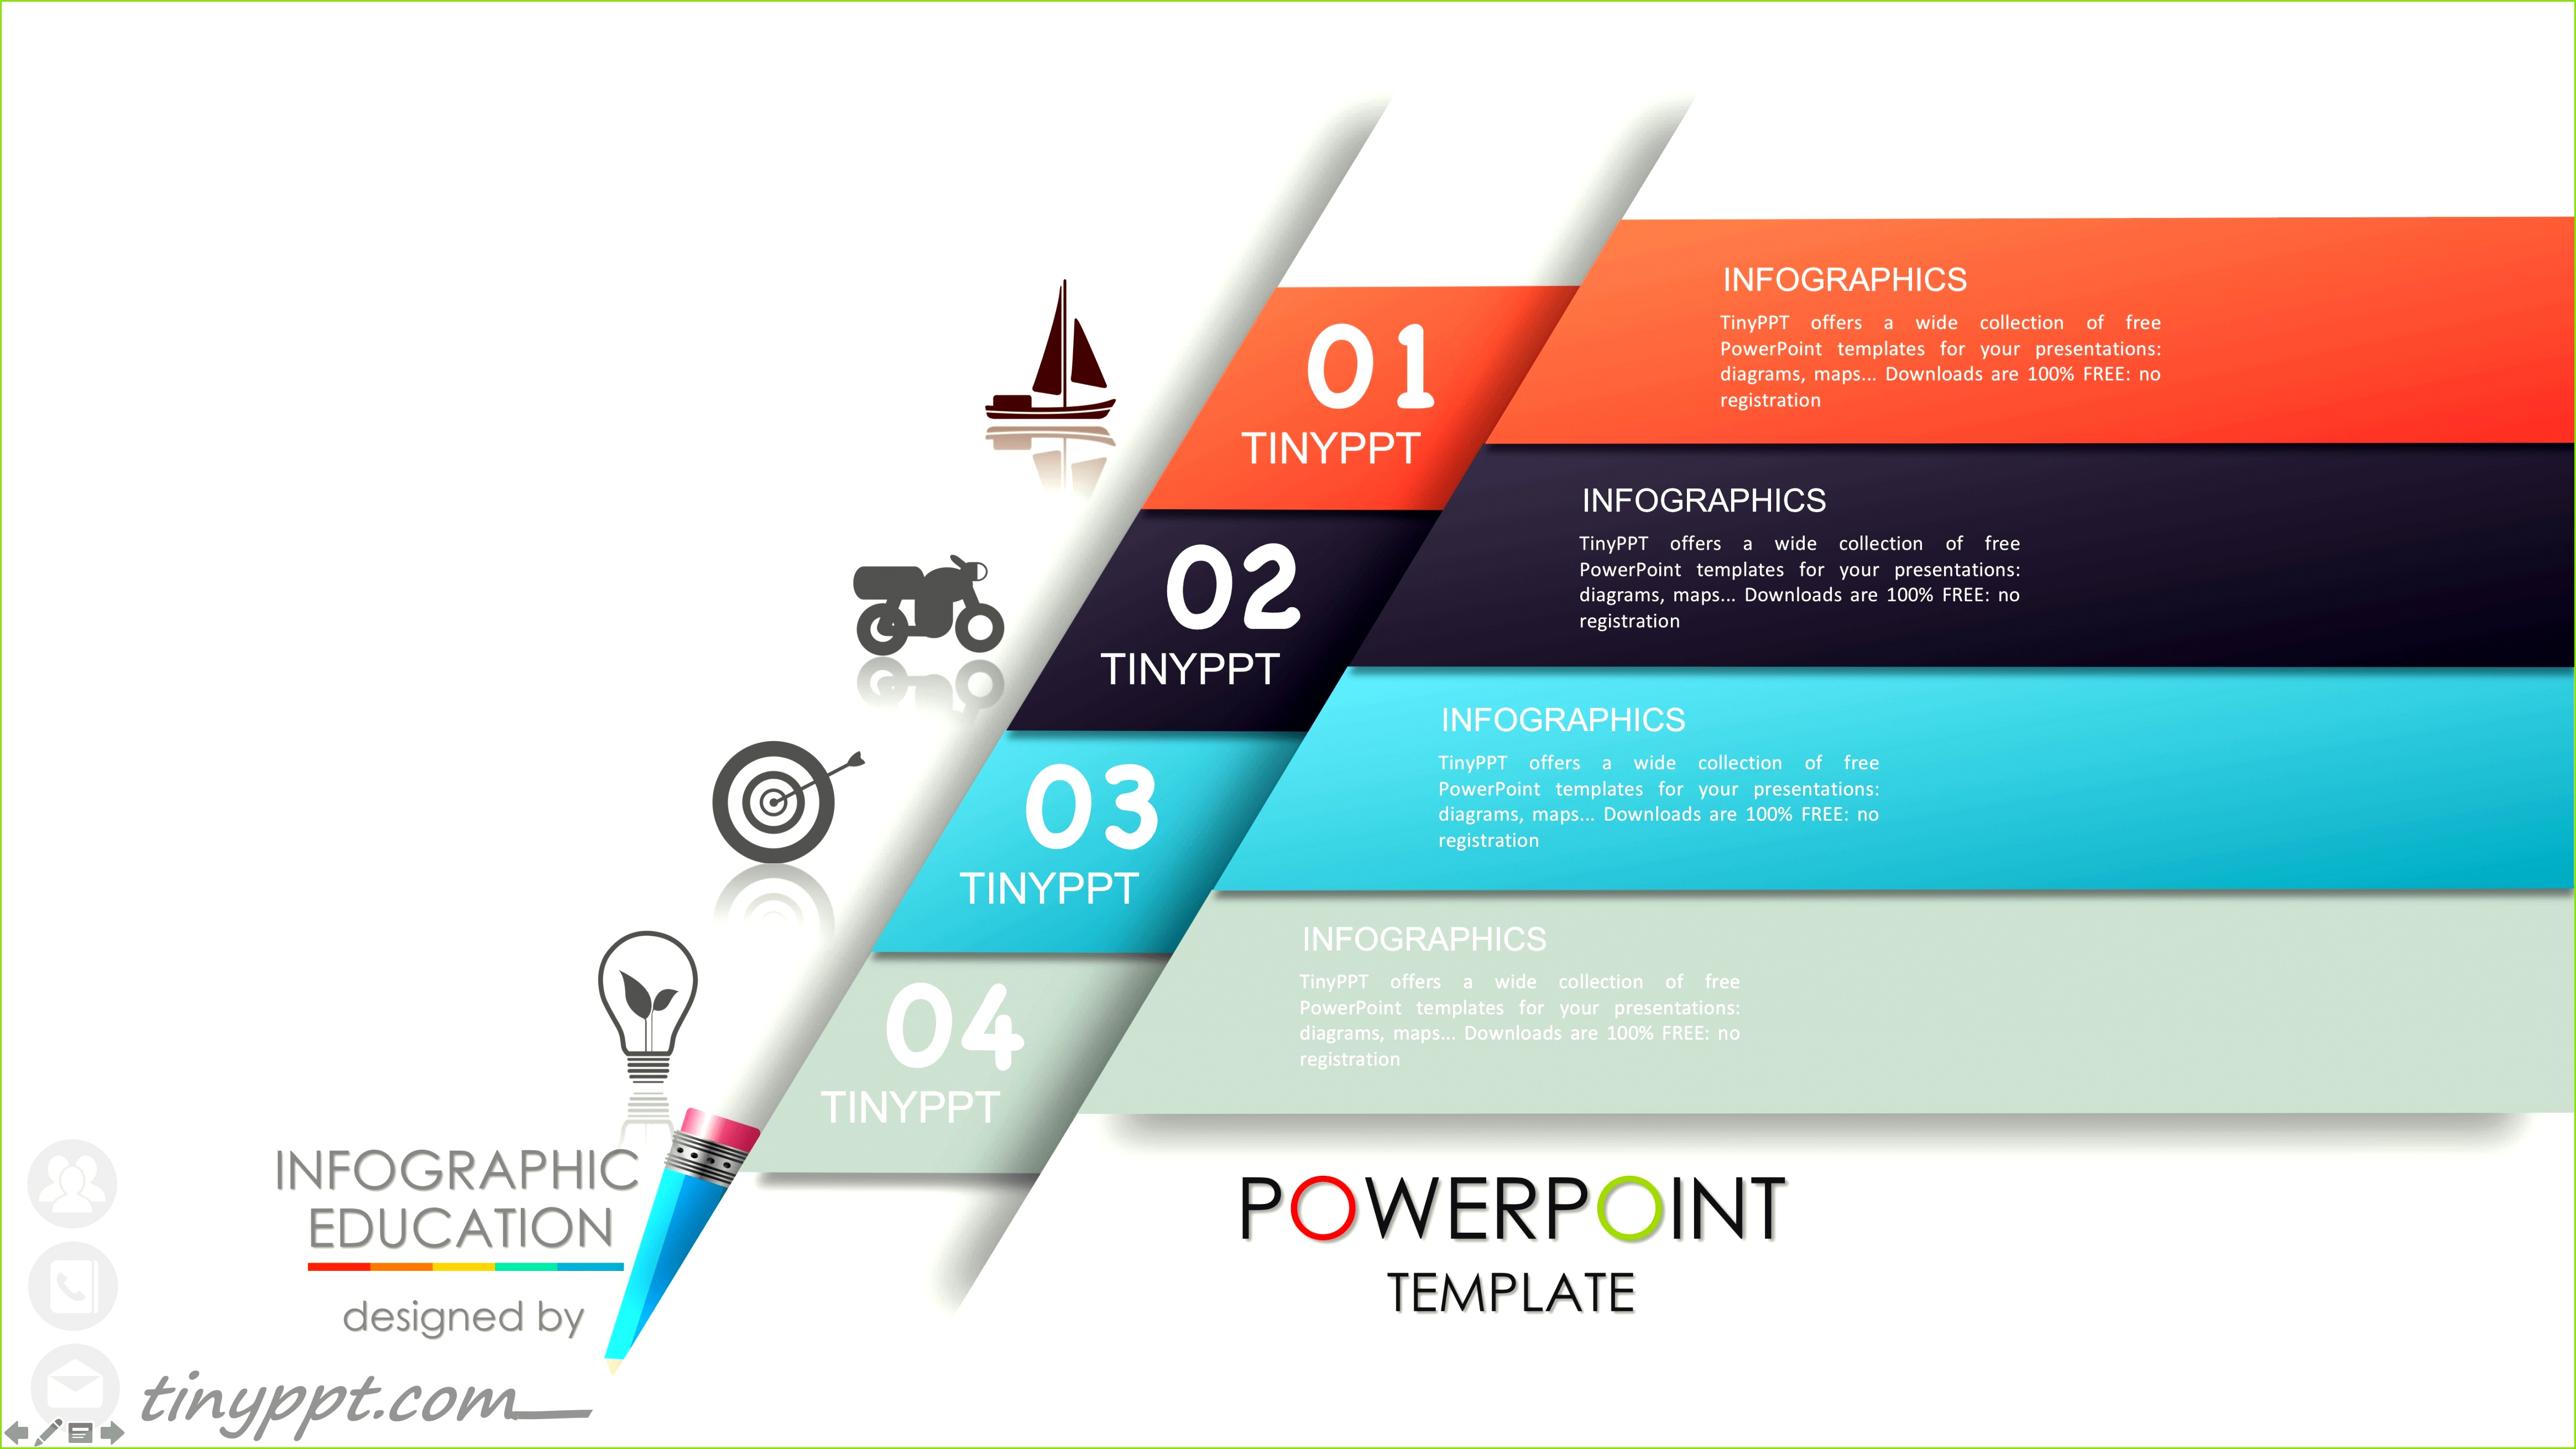 Ppt Template Business Fresh Powerpoint Background Design Powerpoint Templates For 2007 Ppt 0d